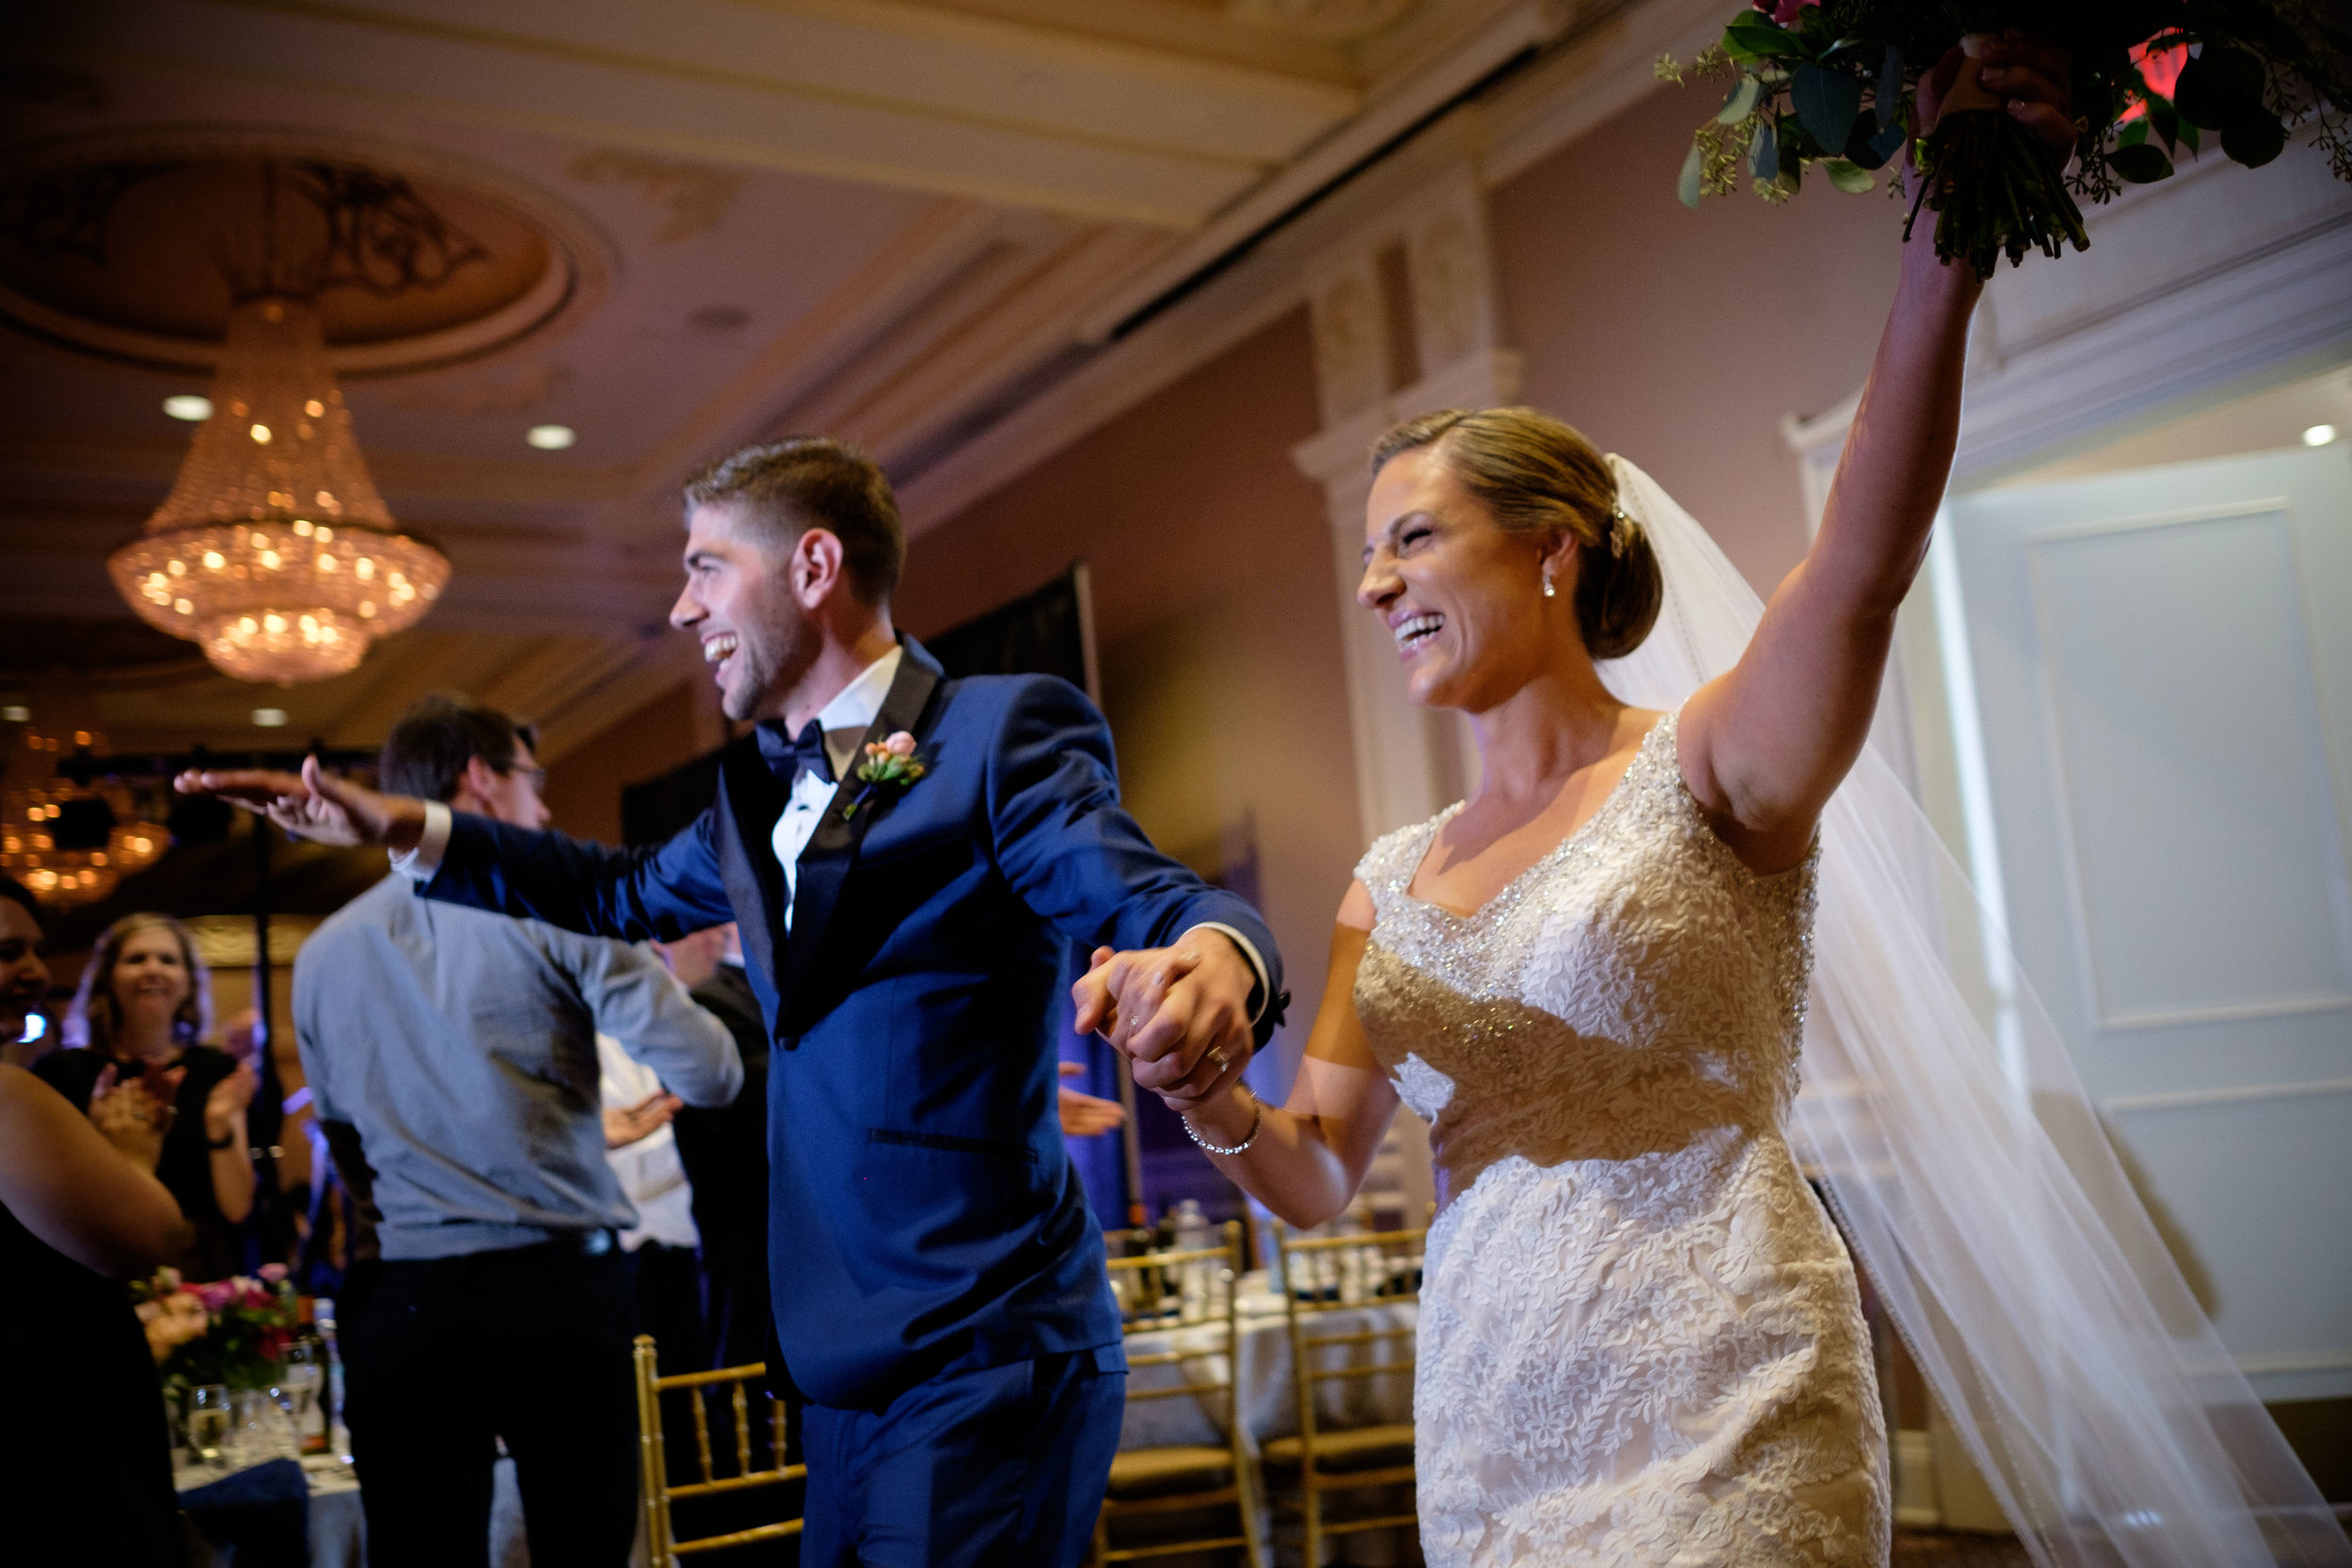 Sabrina + Zach make their grand entrance into their wedding reception at the Jewel Event Centre in Toronto.